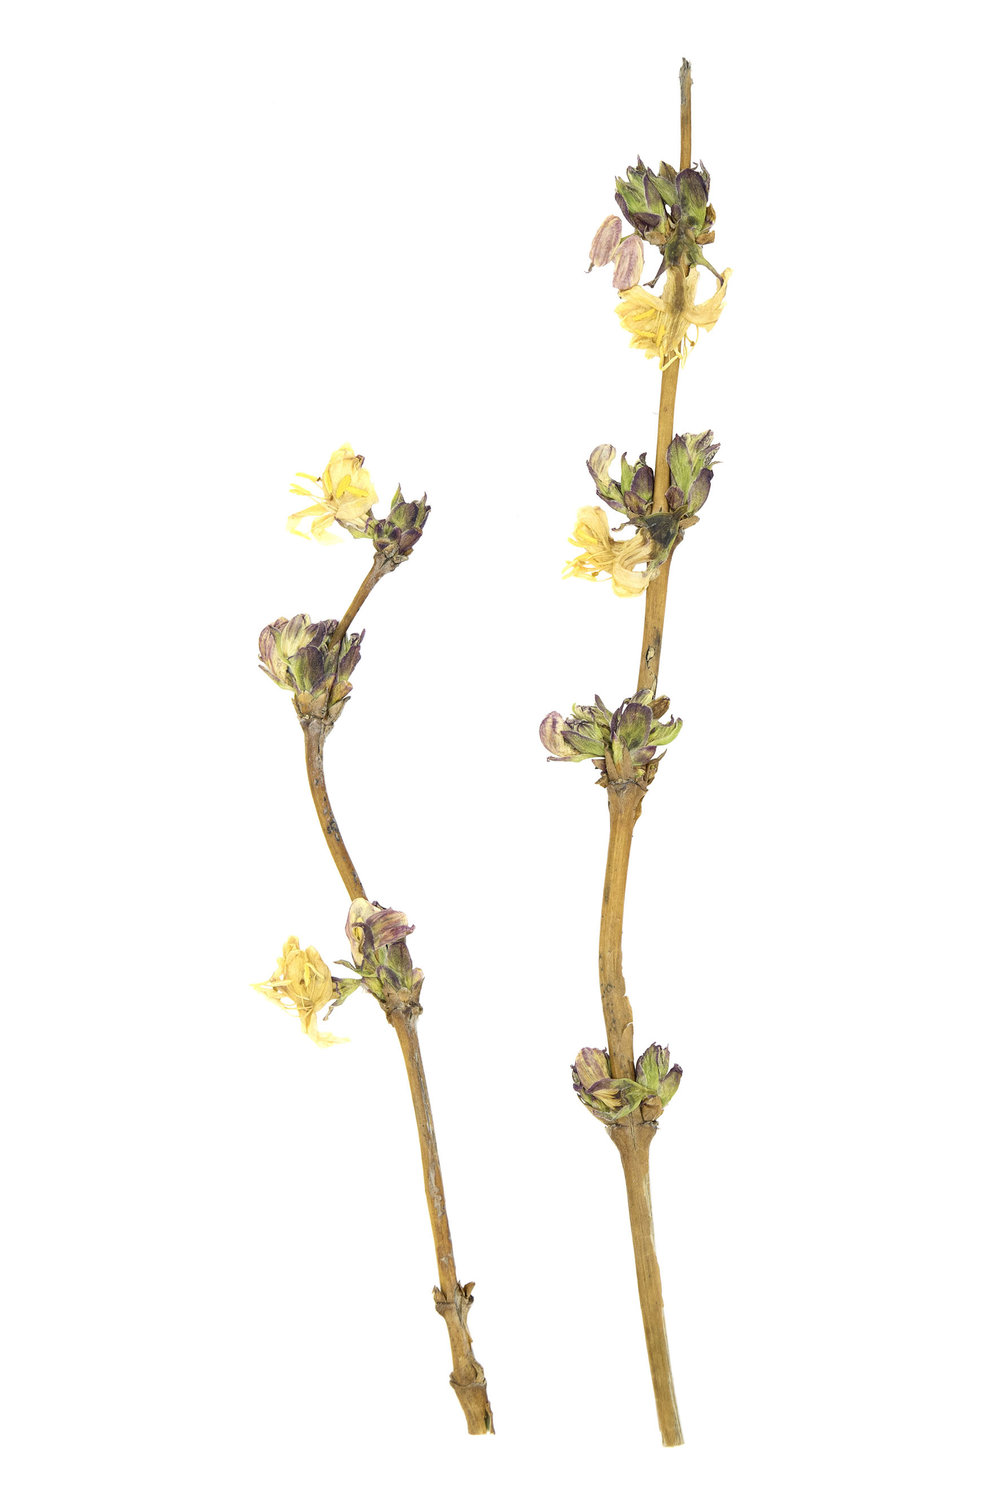 New! Lonicera fragrantissima / Winter Honeysuckle